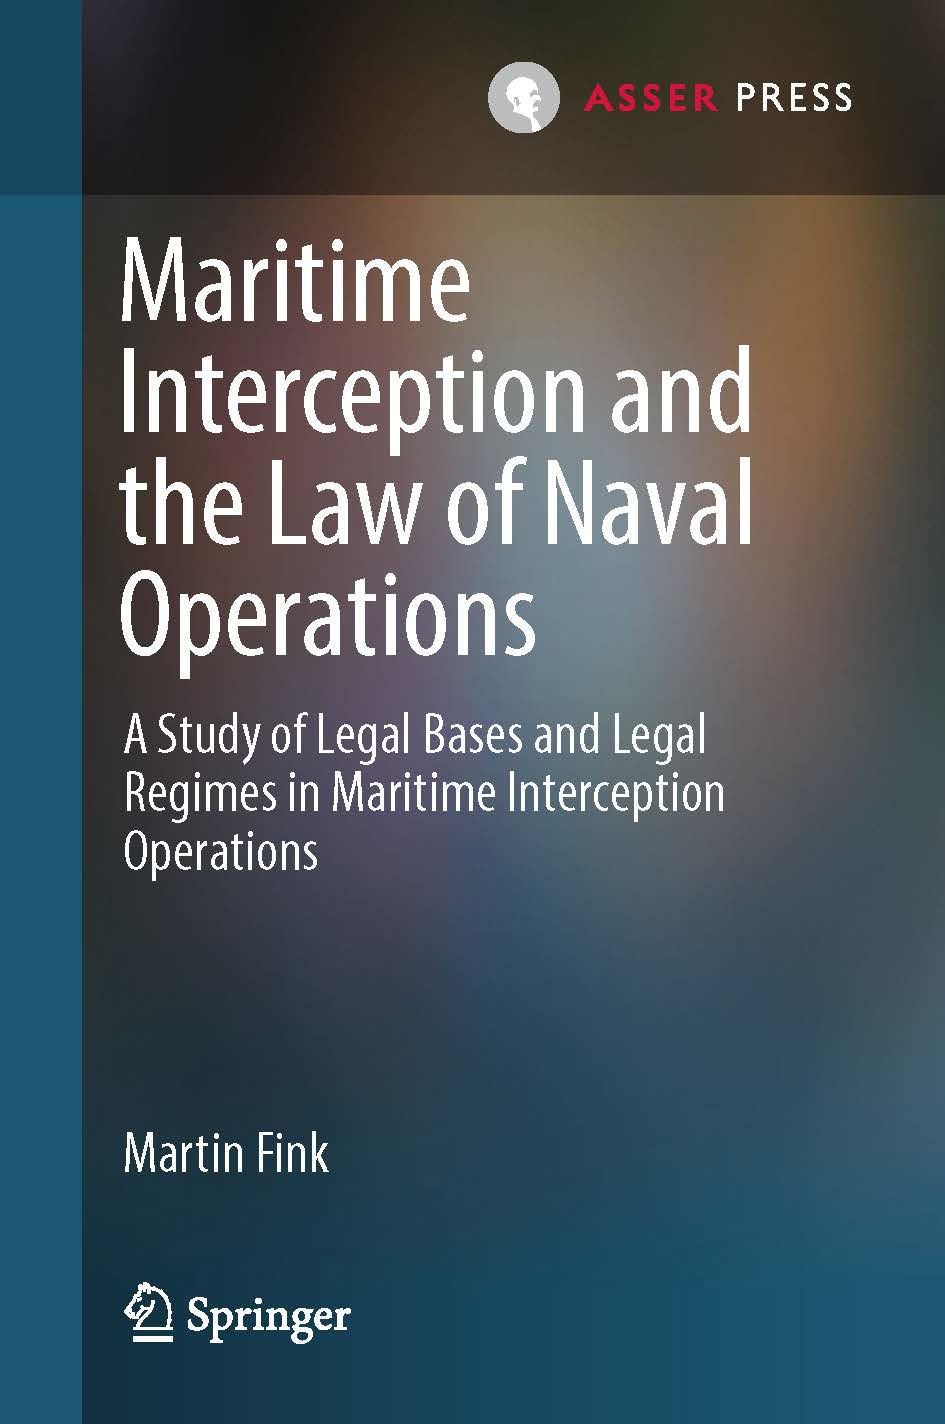 Maritime Interception and the Law of Naval Operations - A Study of Legal Bases and Legal Regimes in Maritime Interception Operations